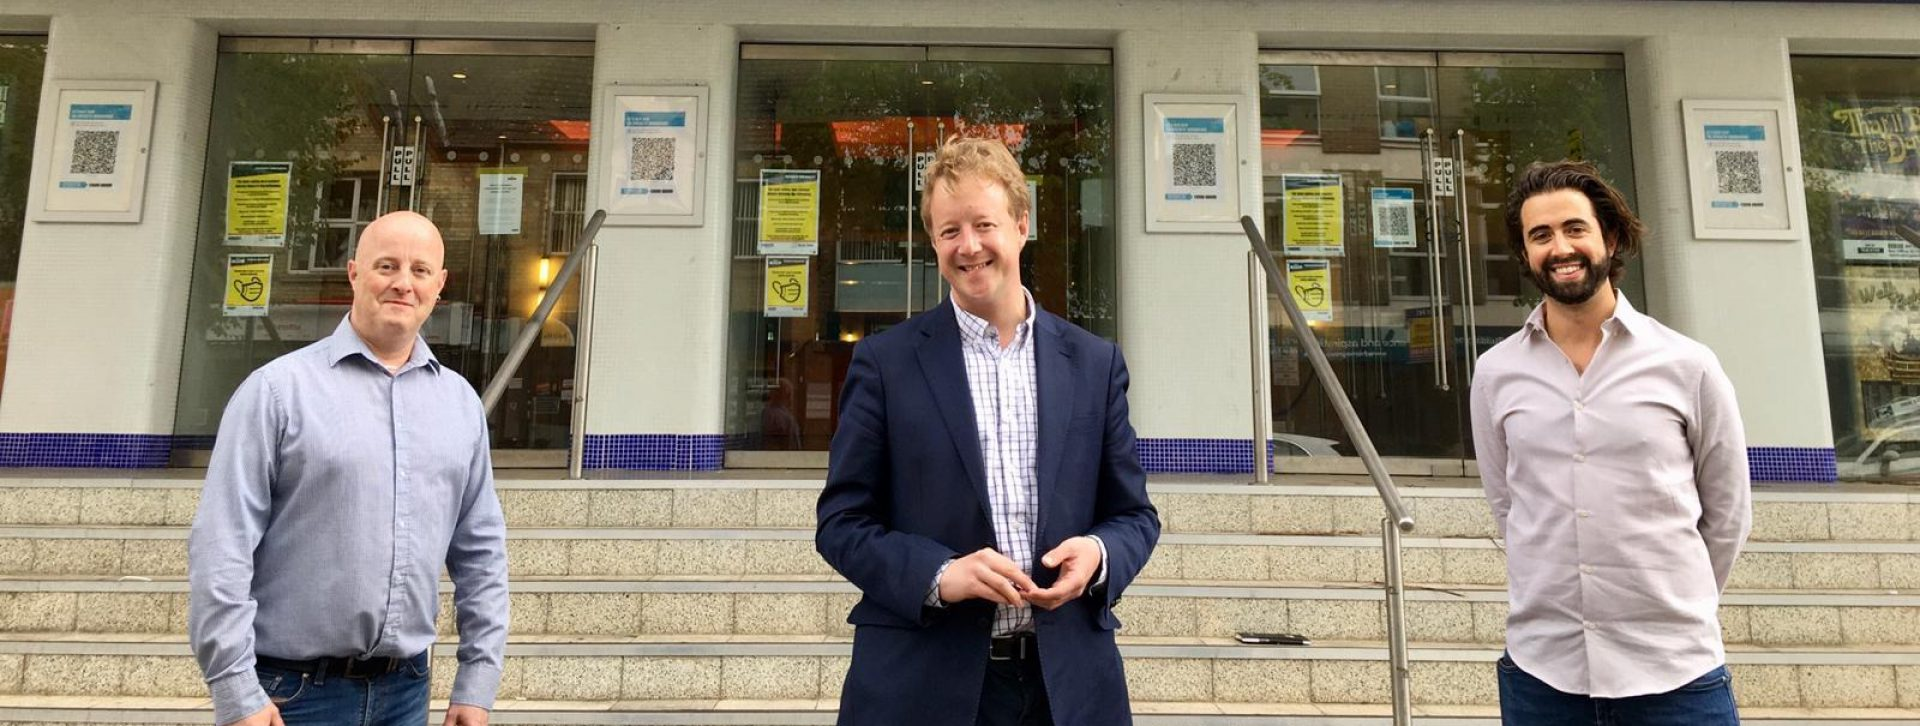 New Theatre Peterborough prepares to reopen with support from £250,000 Arts Council Grant